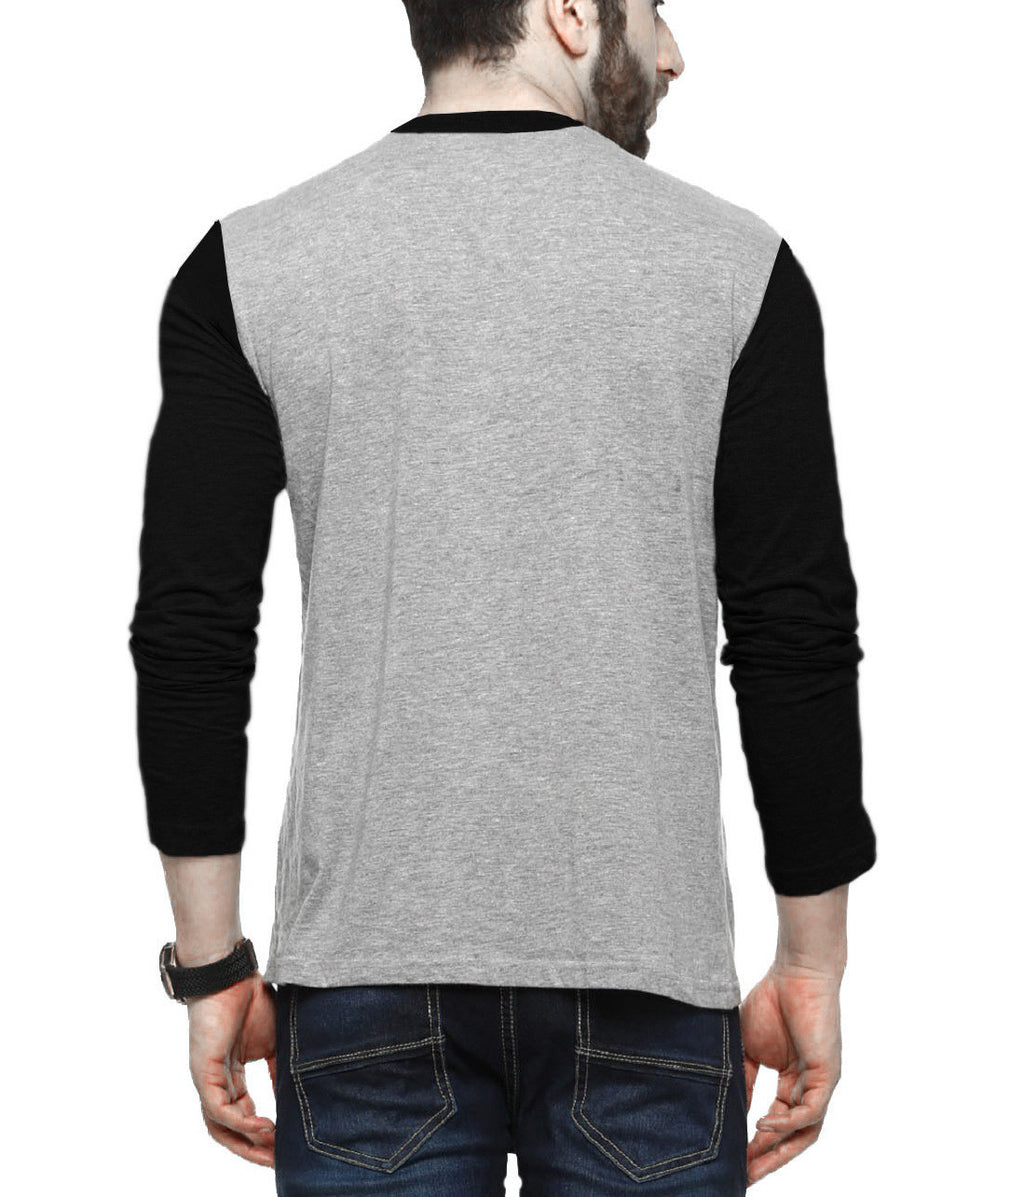 Tripr Men's V-Neck Tshirt Full Sleeves Grey Black